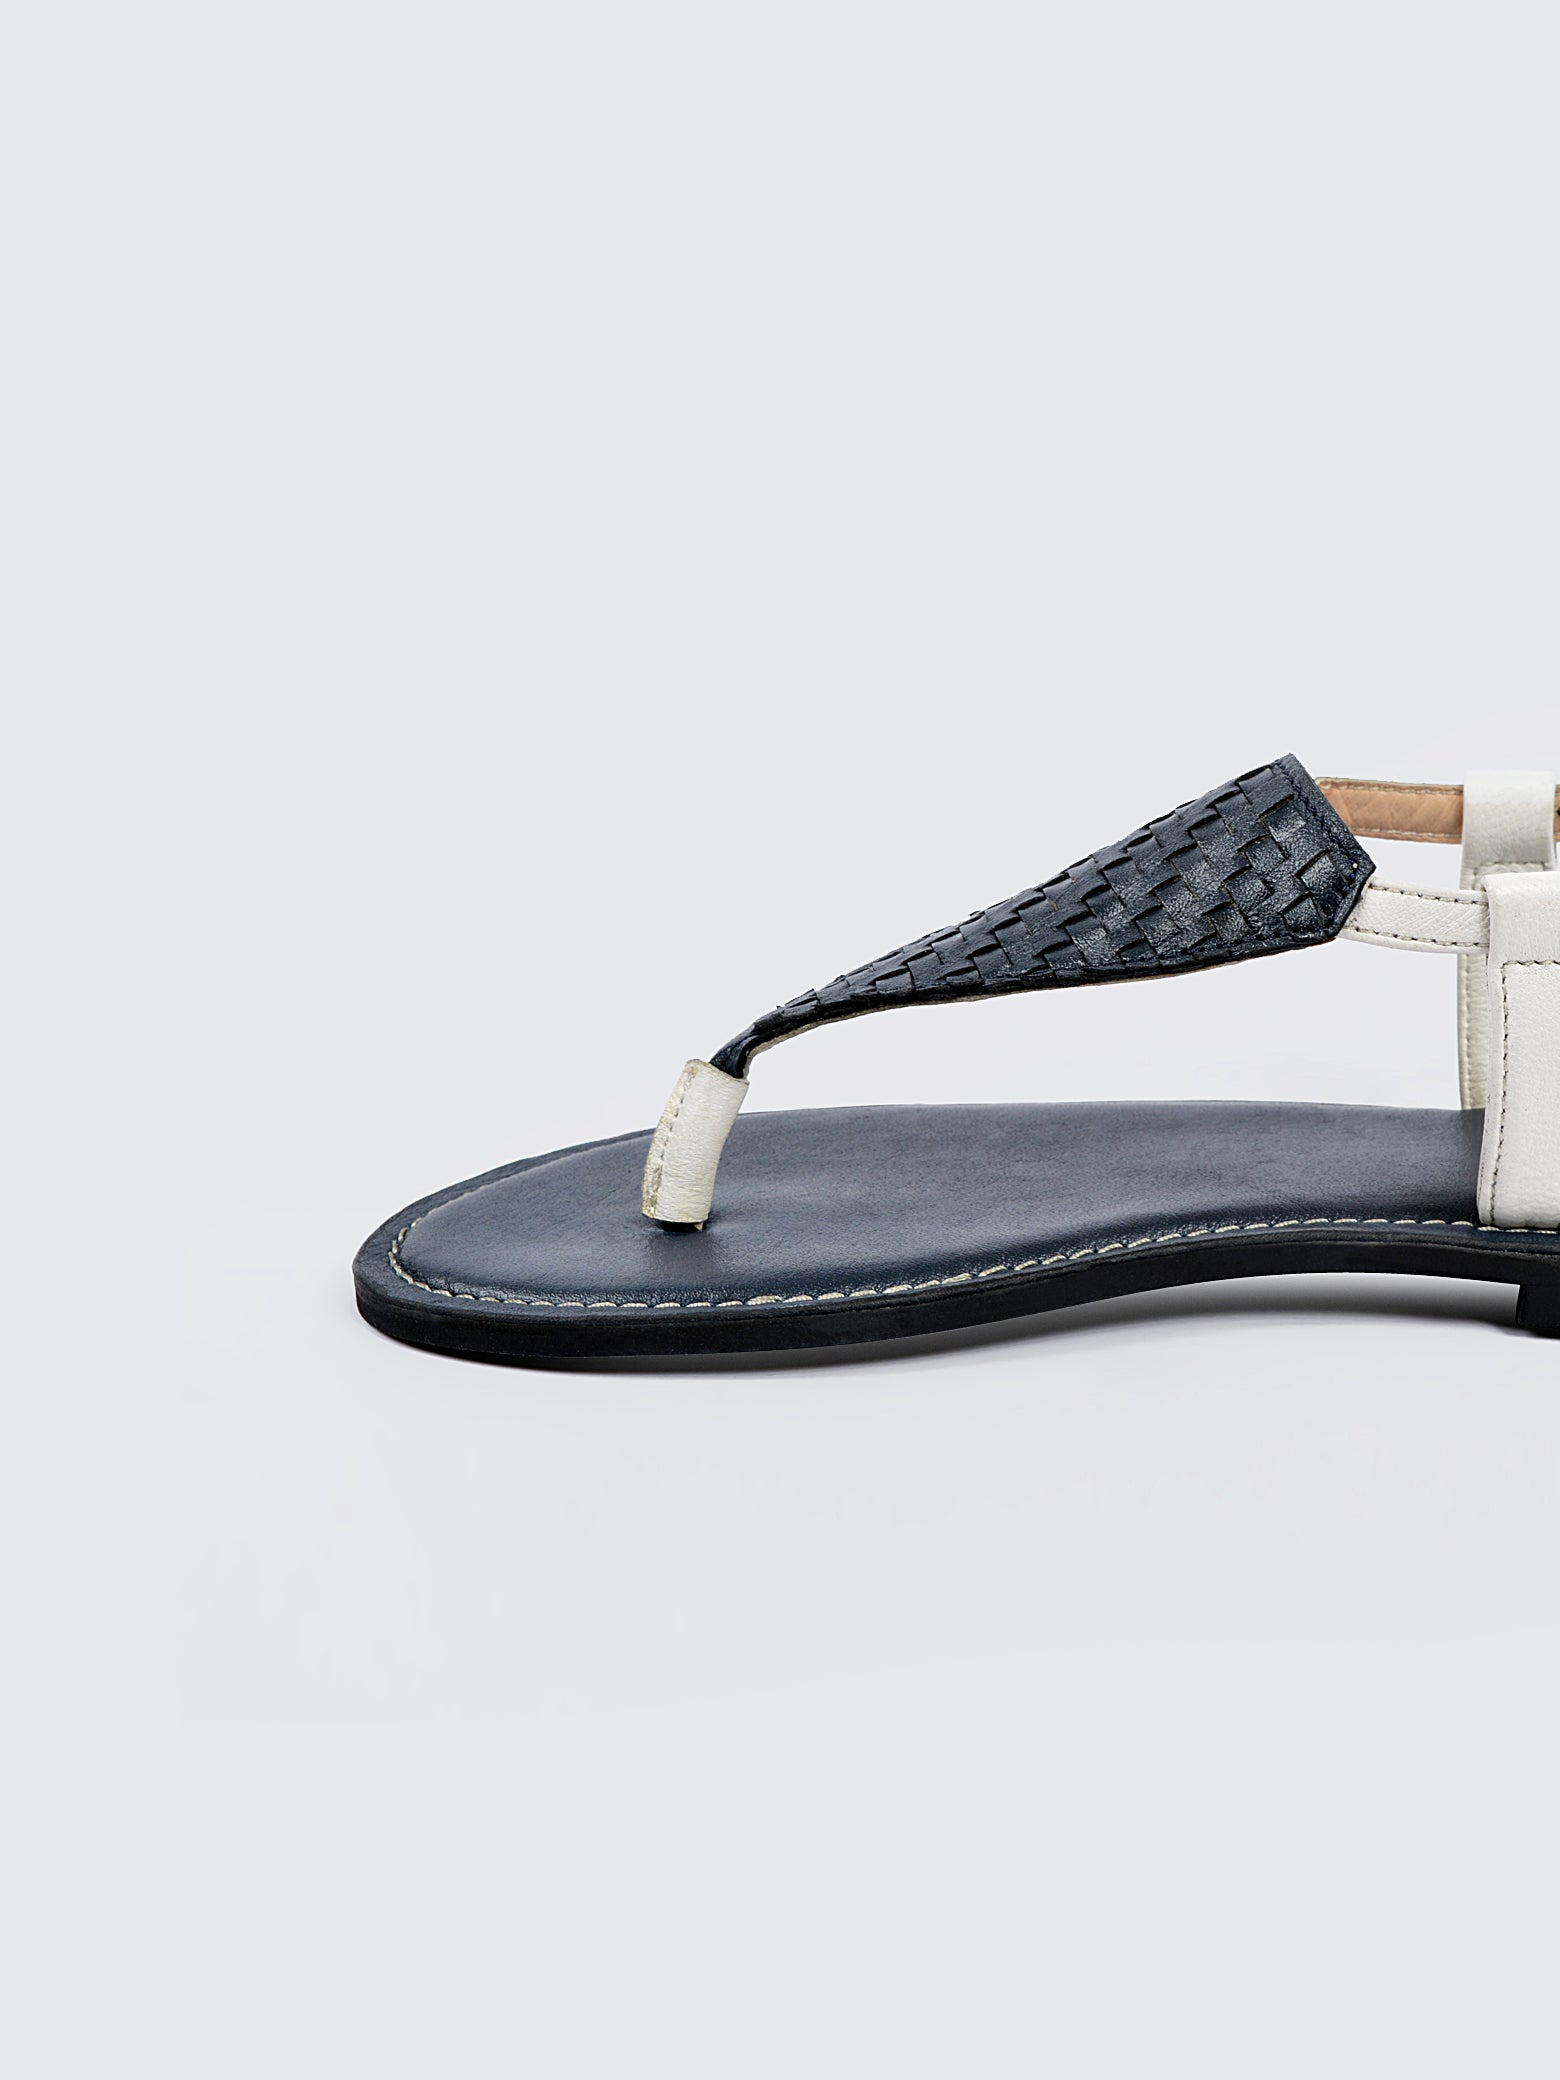 Basket Weave Leather Ankle Strap Sandals - Navy and White